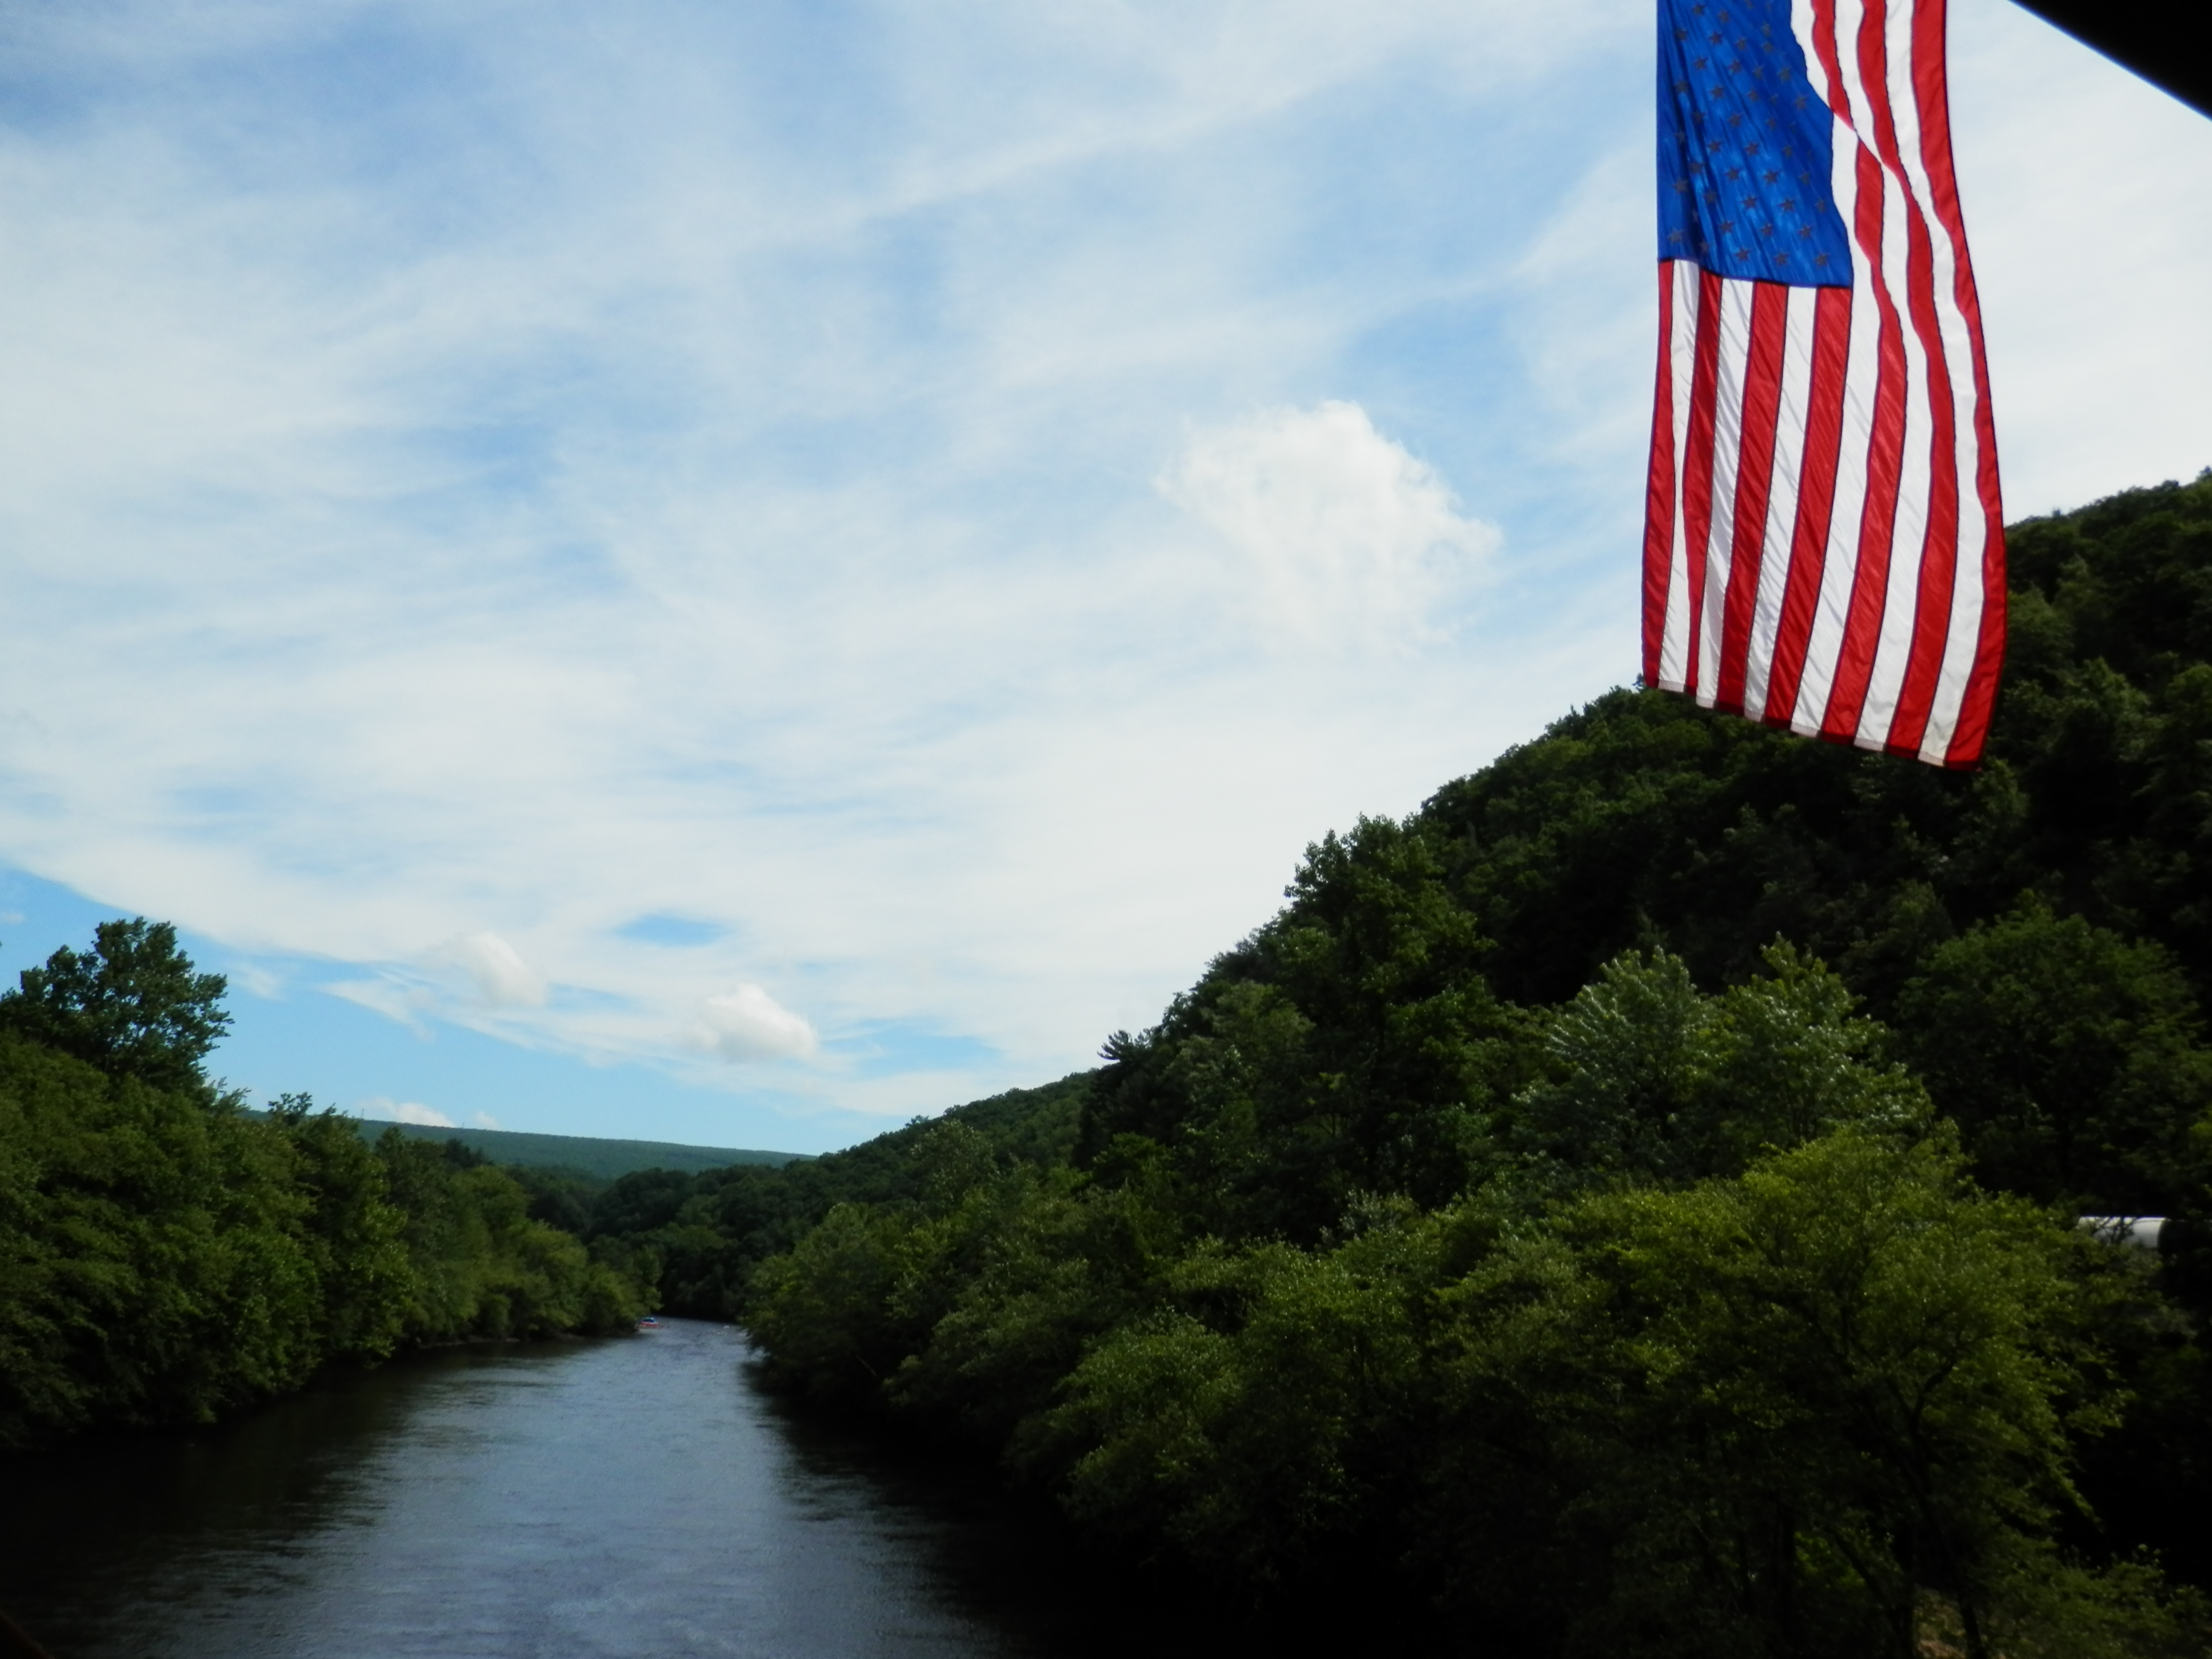 View of the Lehigh River from the American flag bedecked Mansion House pedestrian bridge.